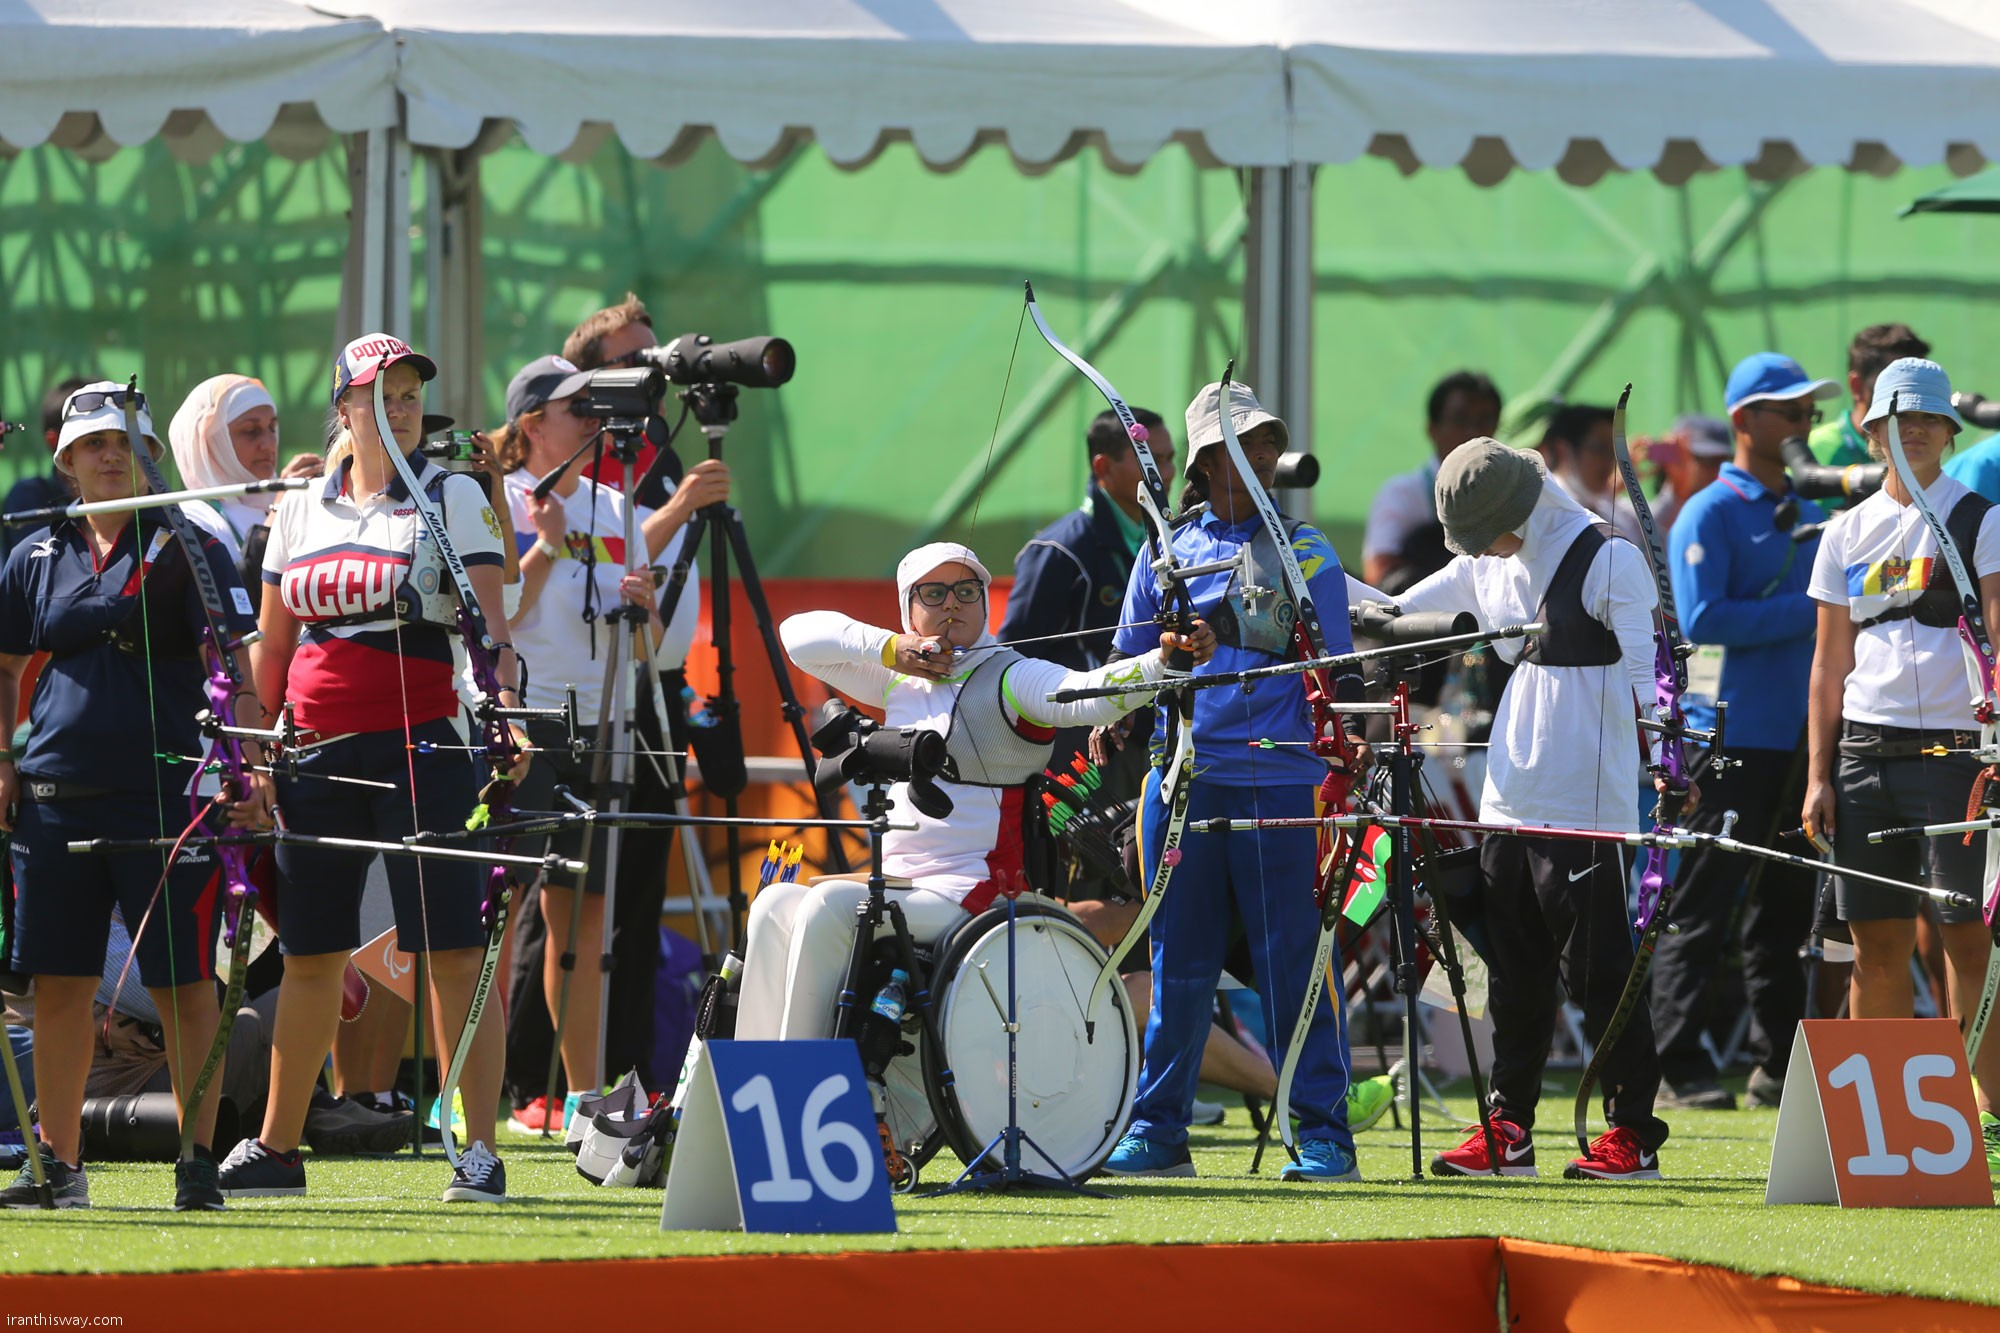 IPC selects Zahra Nemati Iranian paralympics archer as best athlete